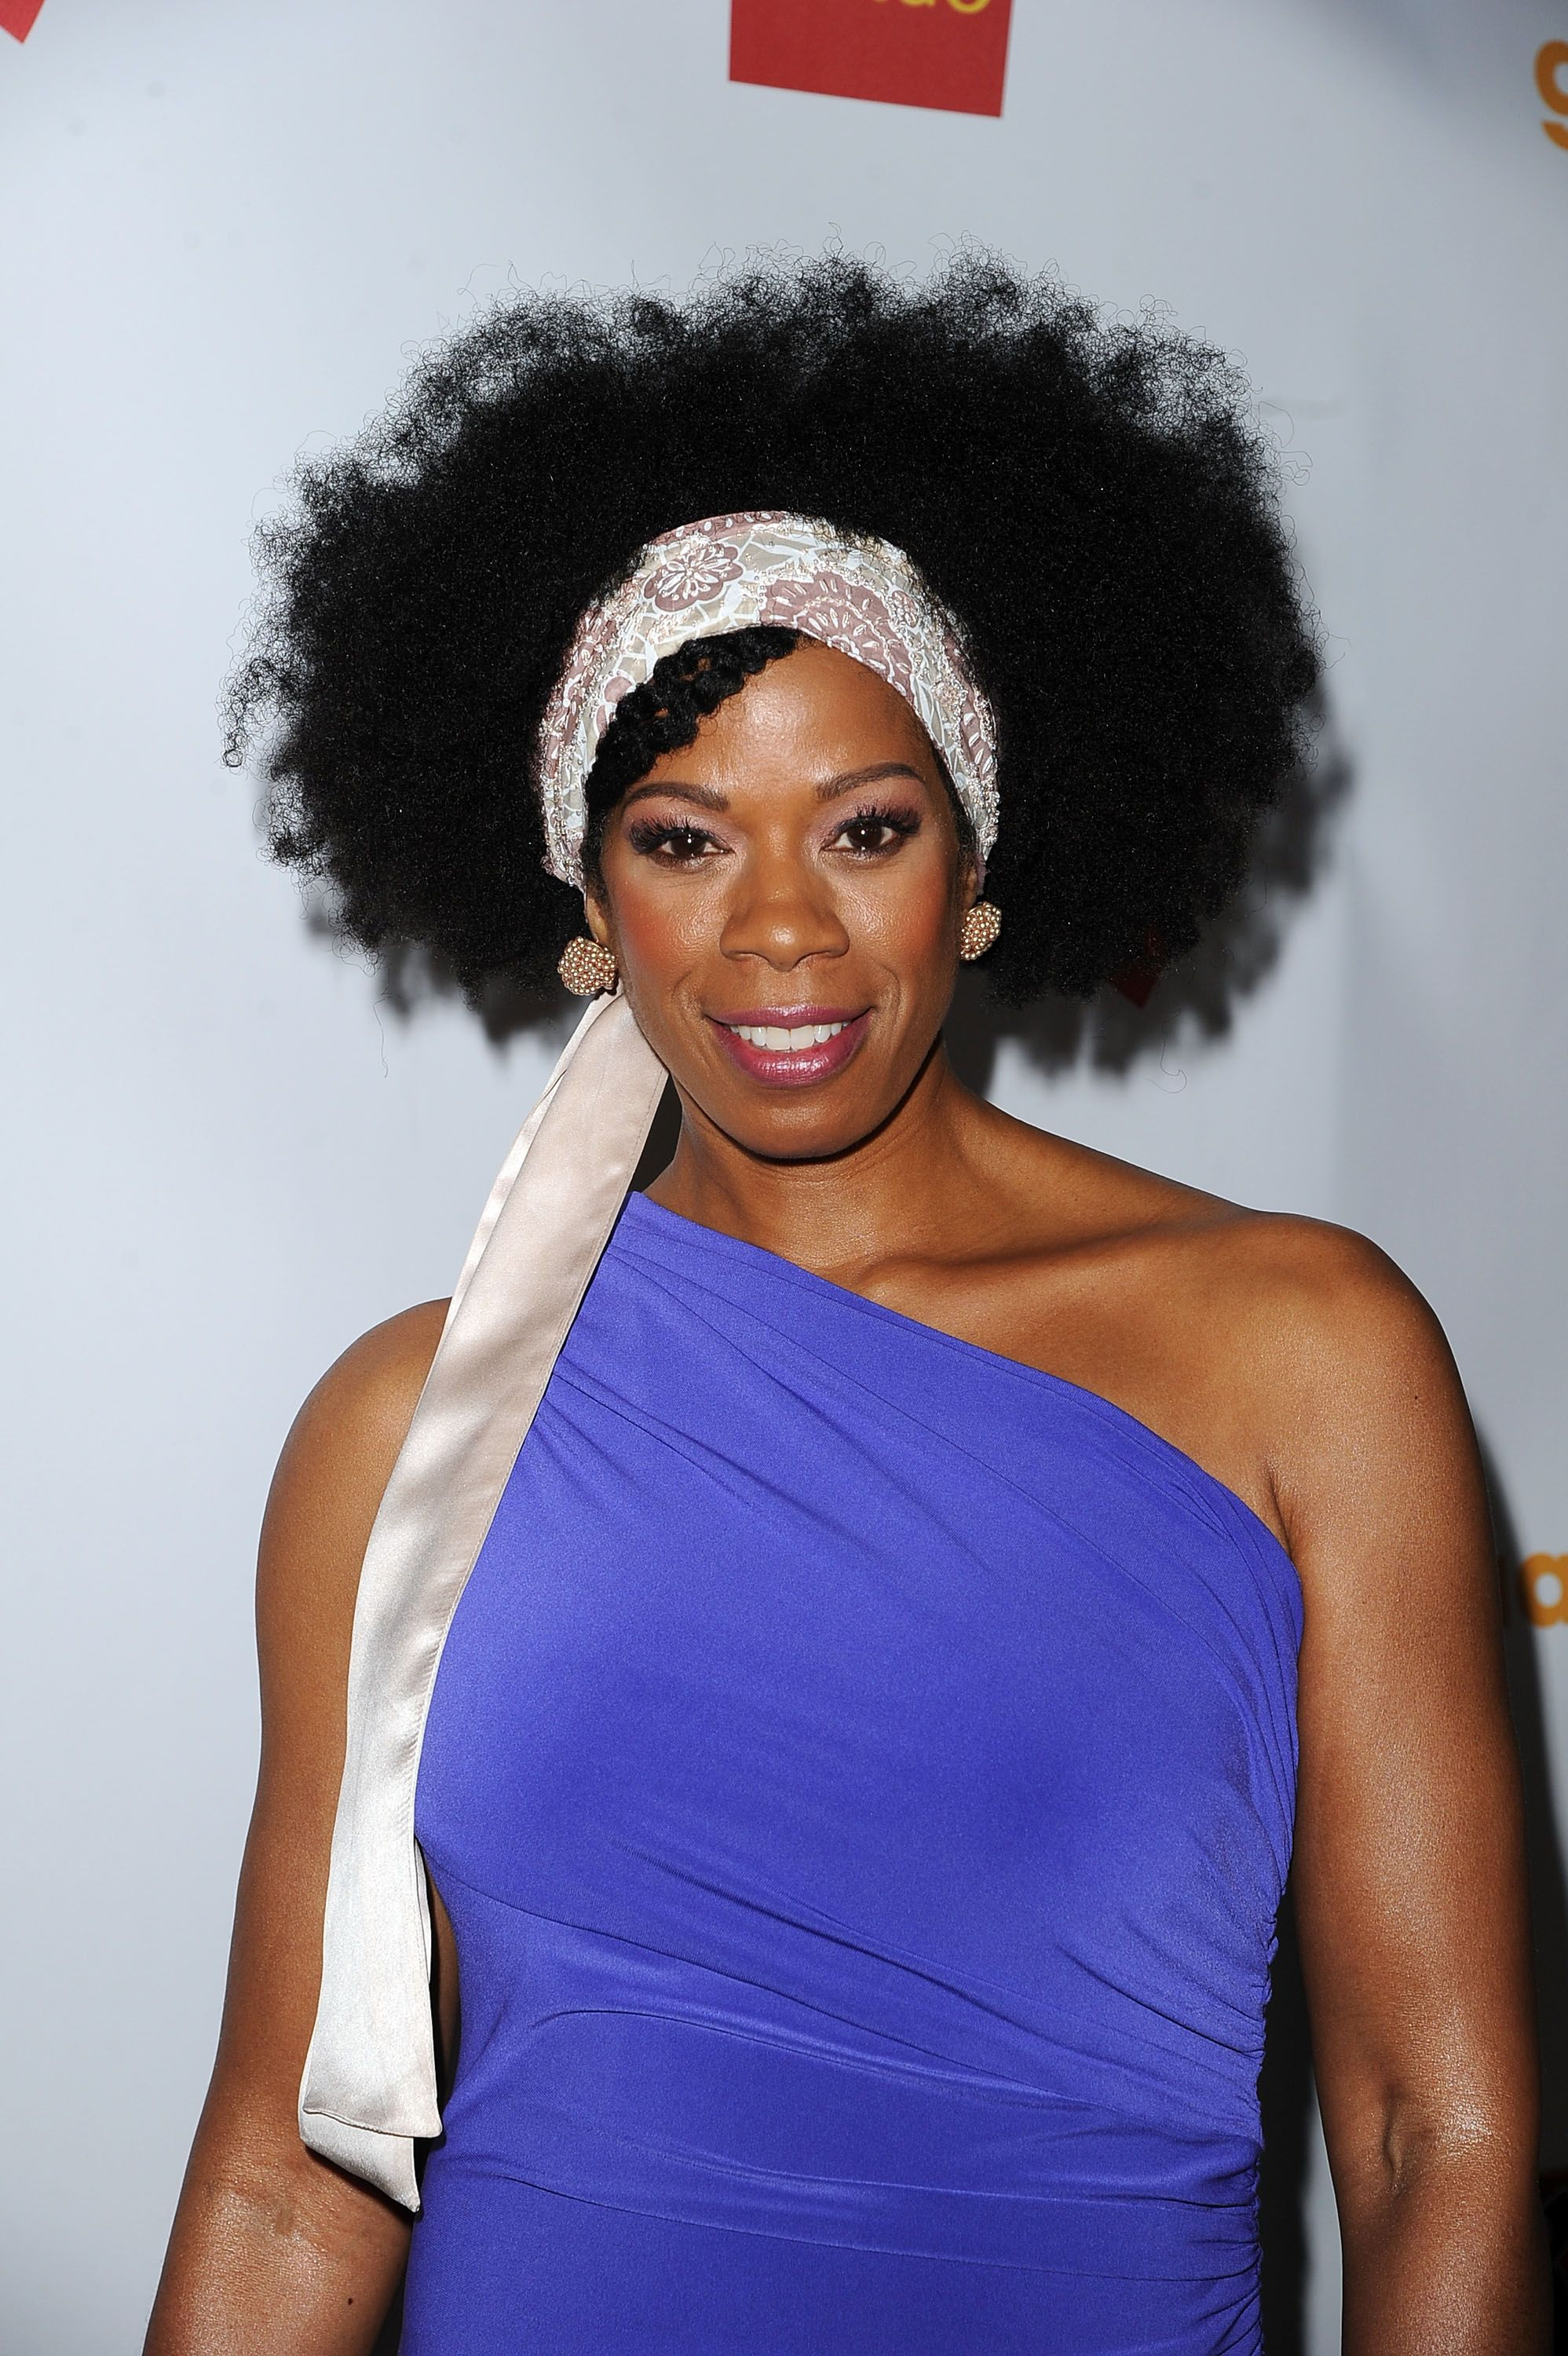 Kim Wayans at the 23rd Annual GLAAD Media Awards in 2012 in Los Angeles   Source: Getty Images